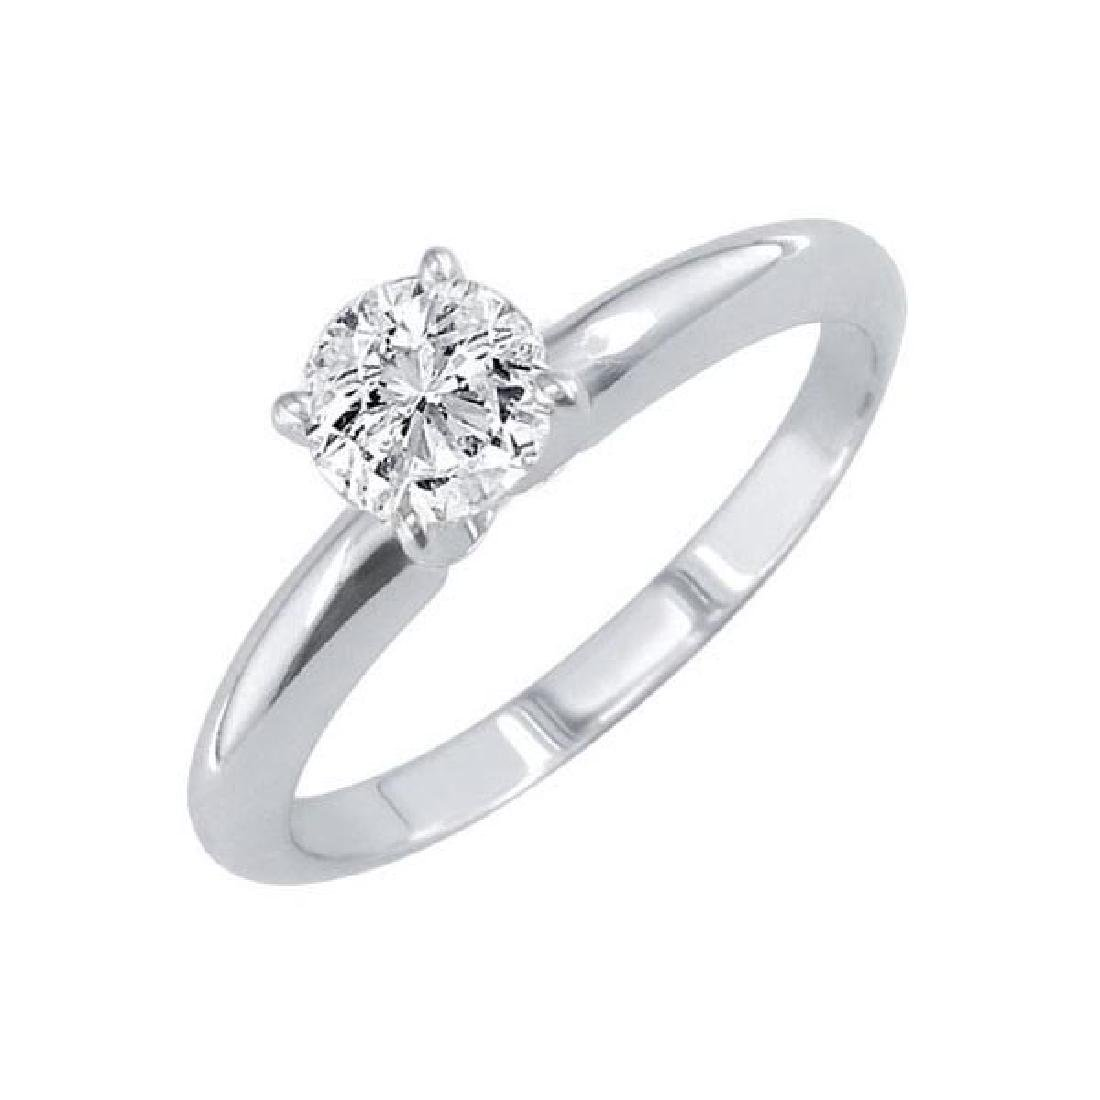 Certified 0.71 CTW Round Diamond Solitaire 14k Ring H/S